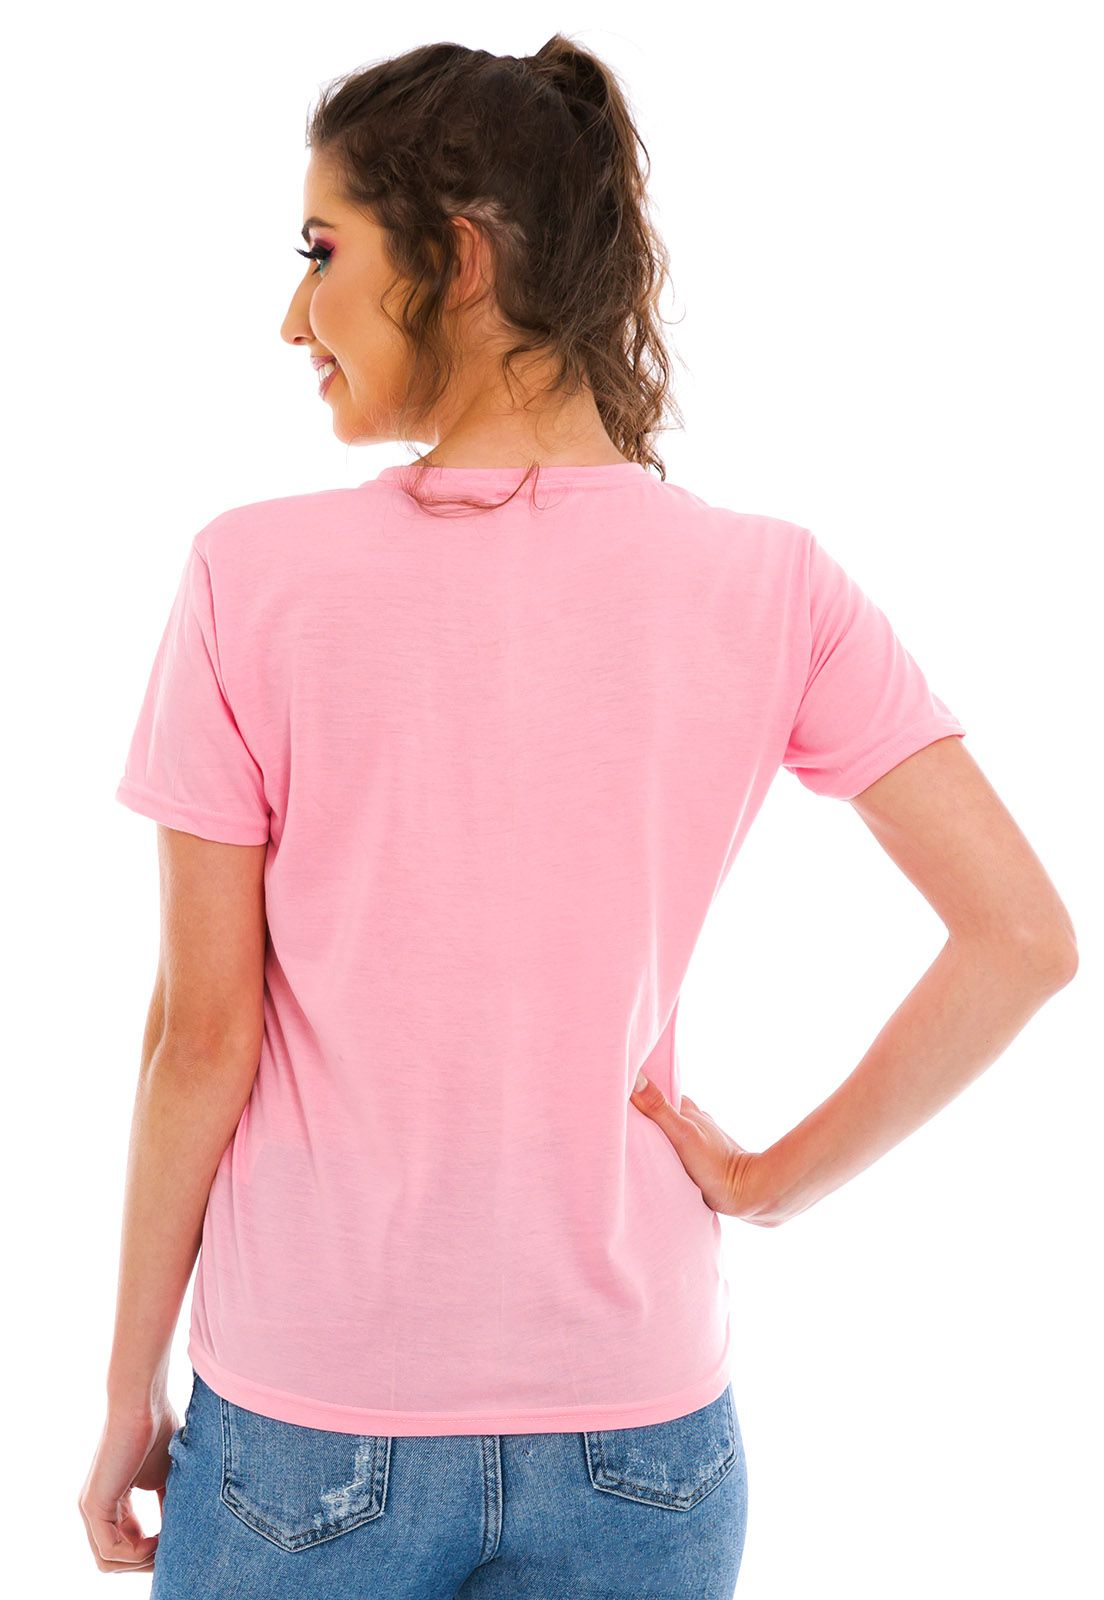 Blusa Bordada Woman Rosa